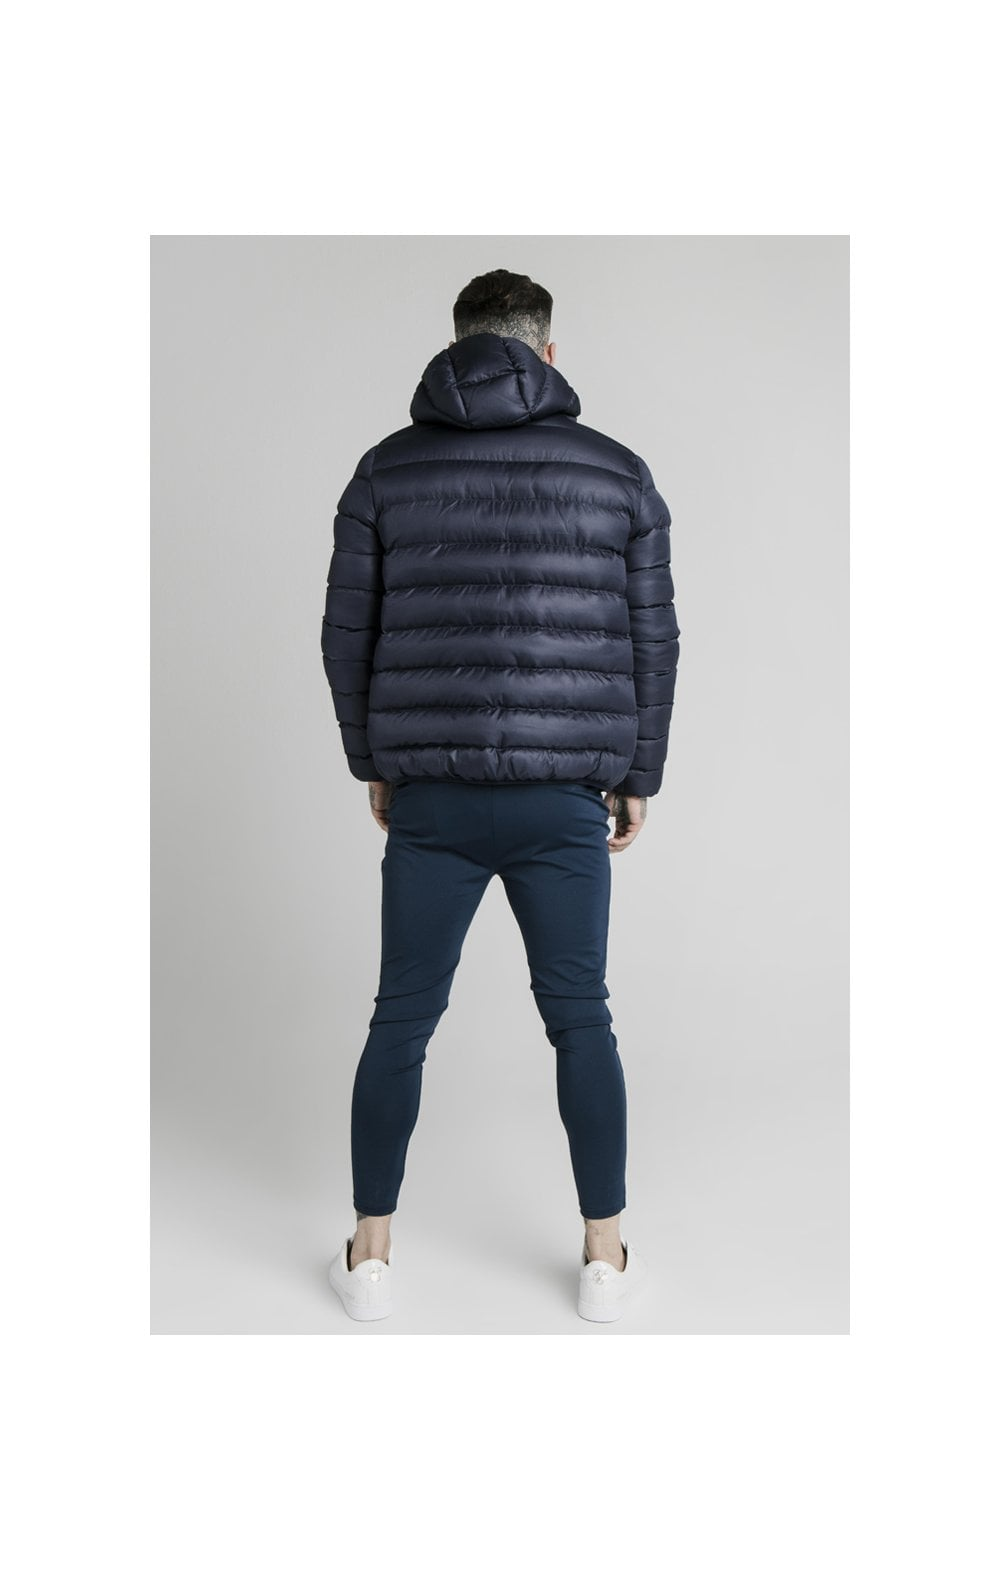 Load image into Gallery viewer, SikSilk Atmosphere Jacket - Navy (4)